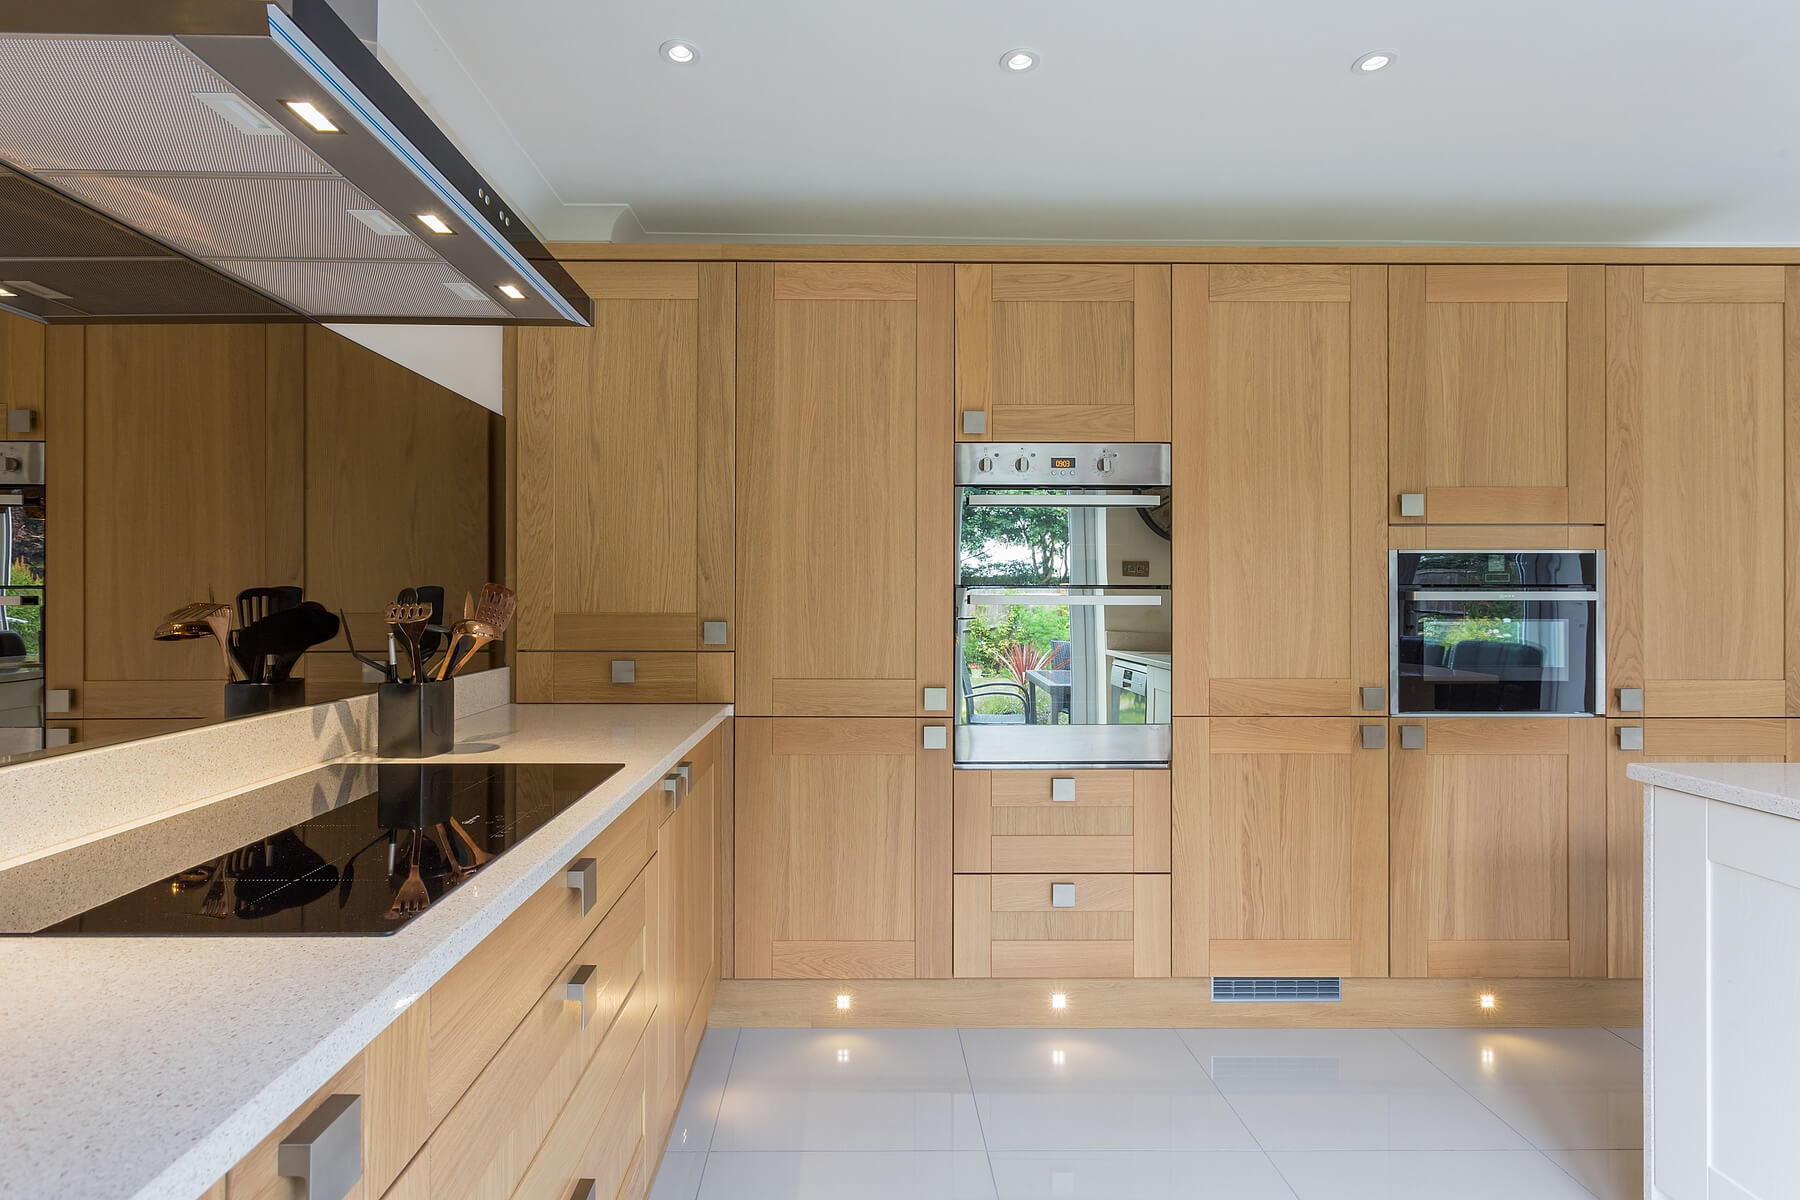 C&C kitchens Hertfordshire - Pendle Oak & Cream Shaker